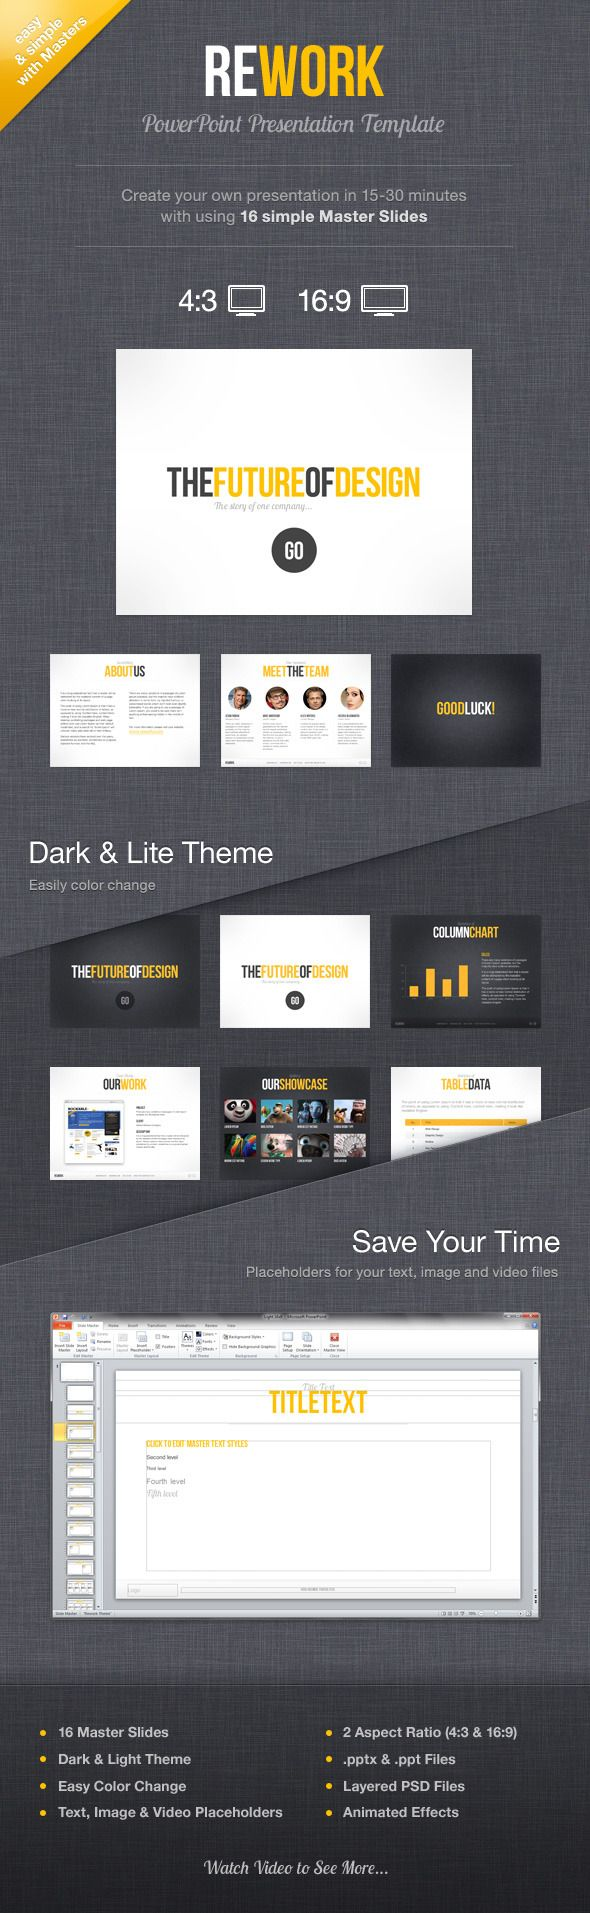 Rework powerpoint presentation template powerpoint presentation rework powerpoint presentation template toneelgroepblik Choice Image